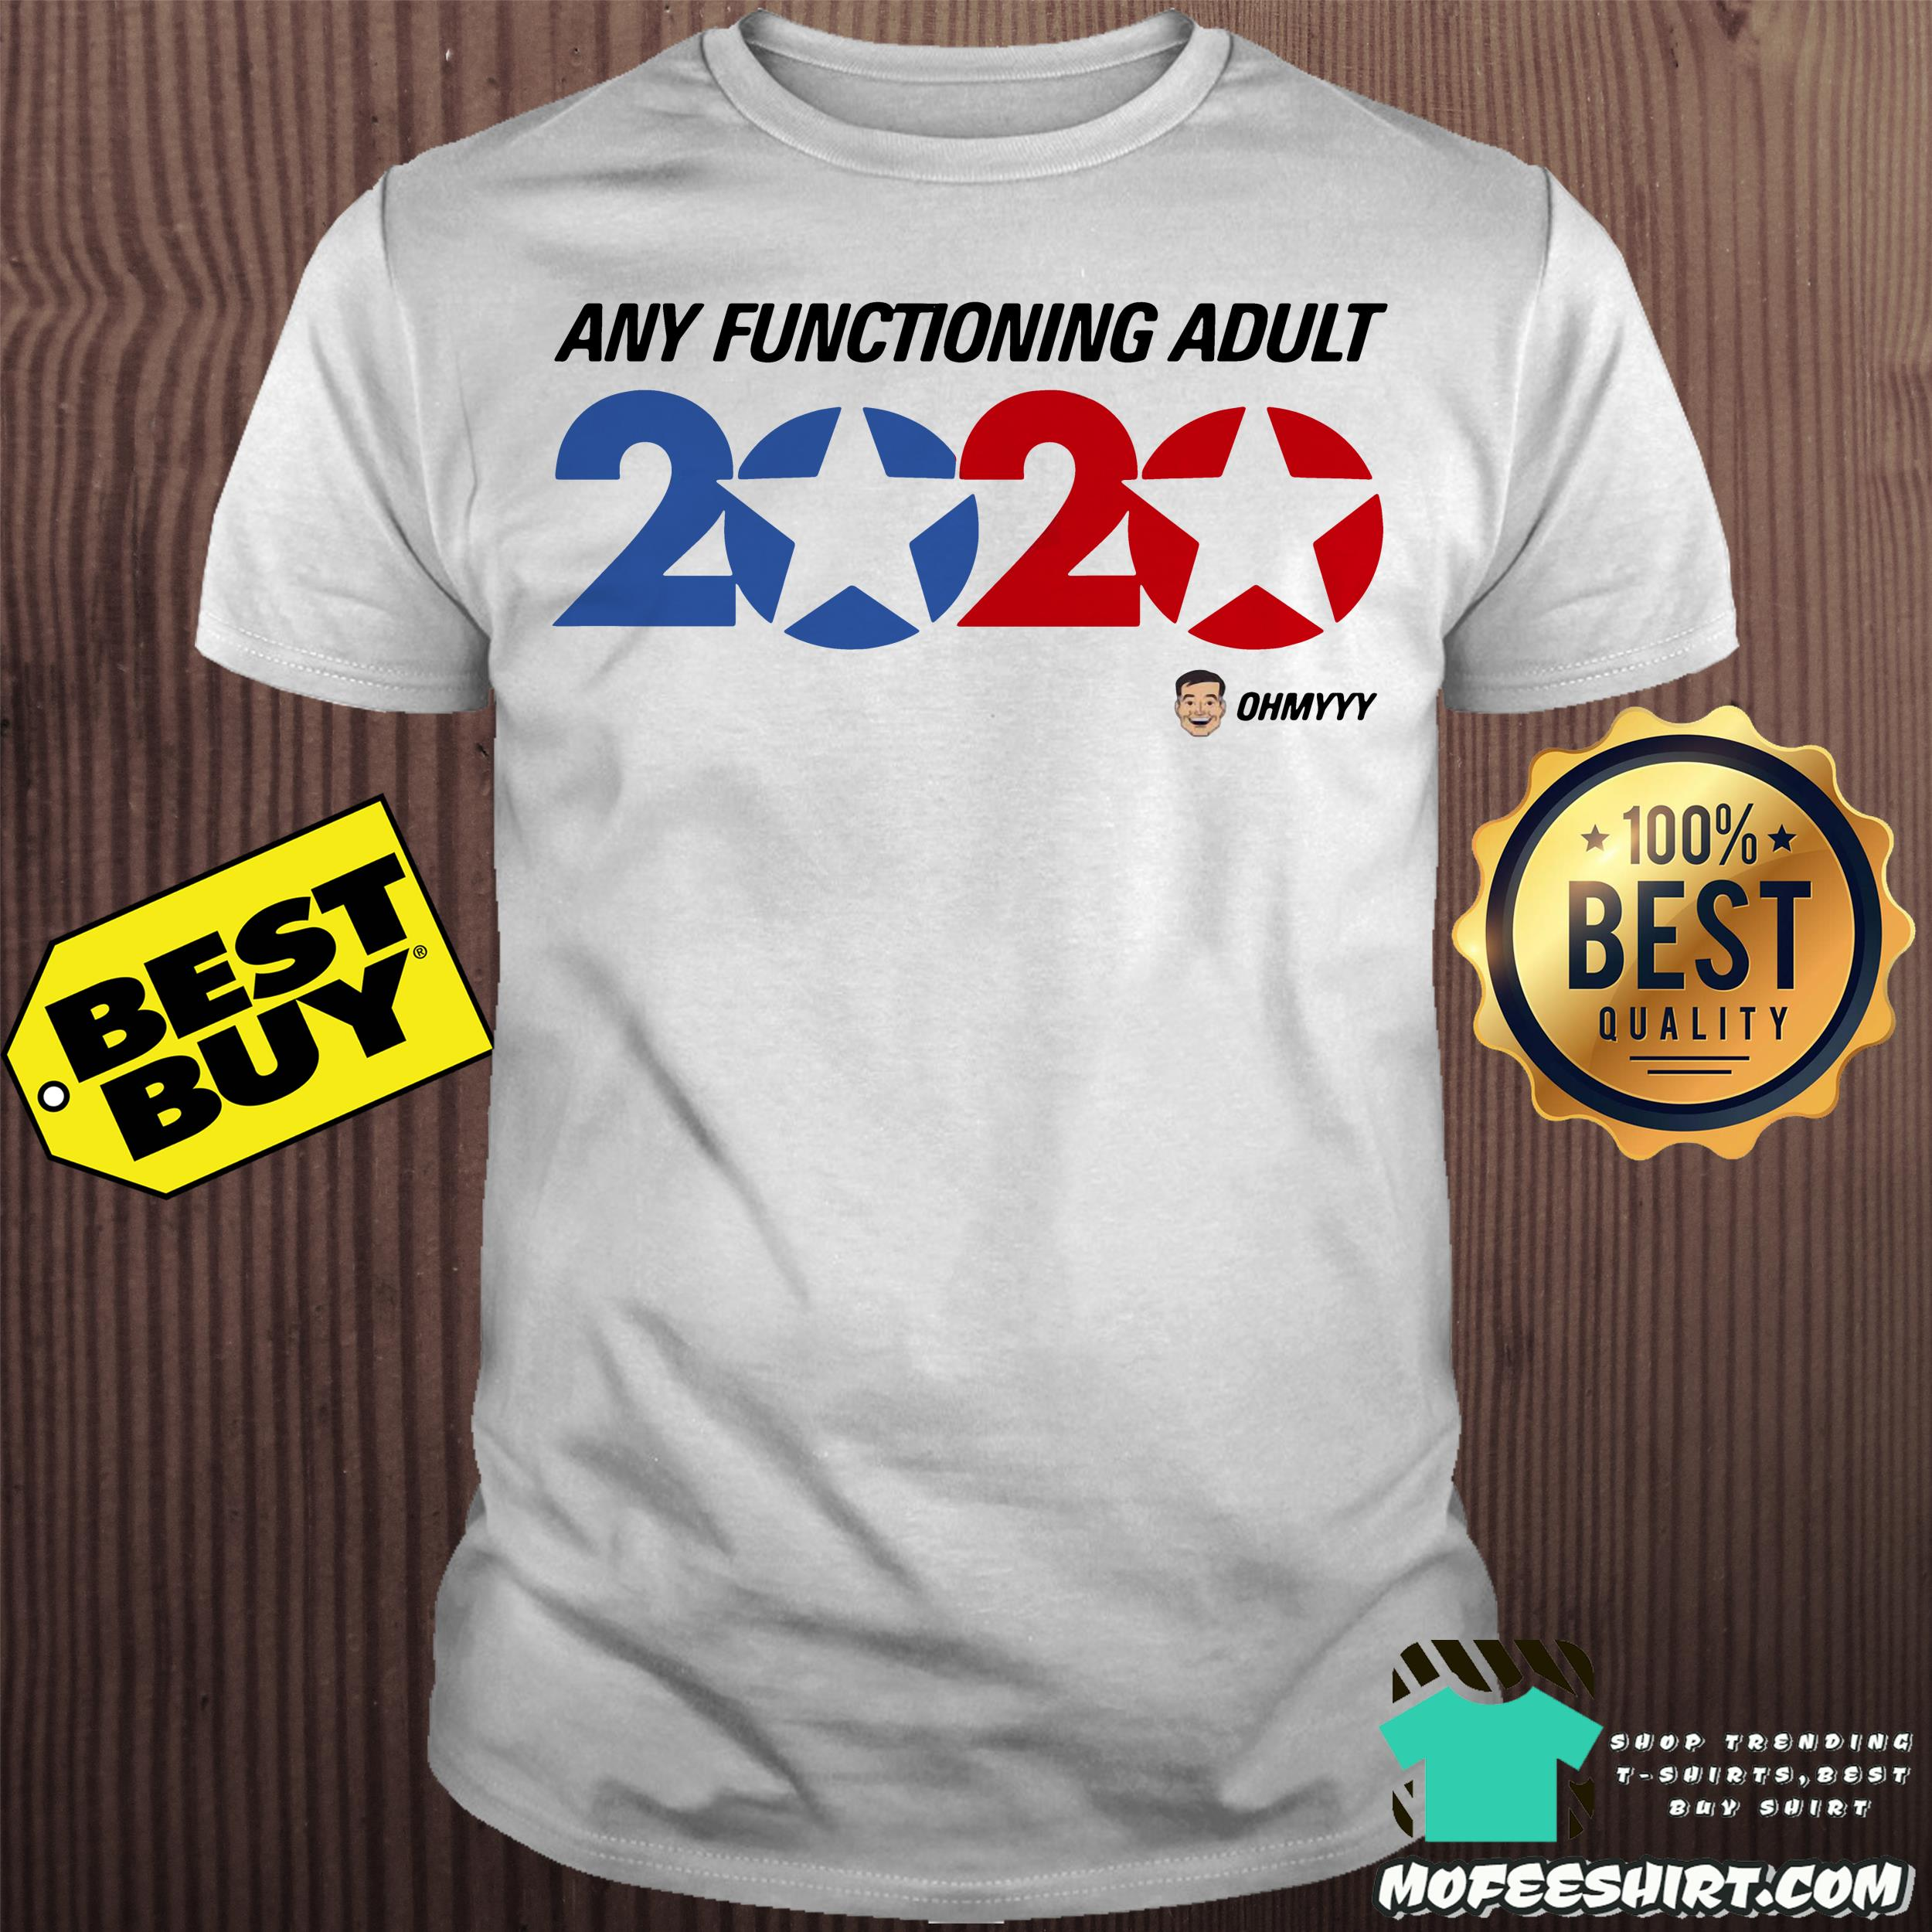 america trump 2020 george takei any functioning adult shirt - America Trump 2020 George Takei Any functioning adult shirt